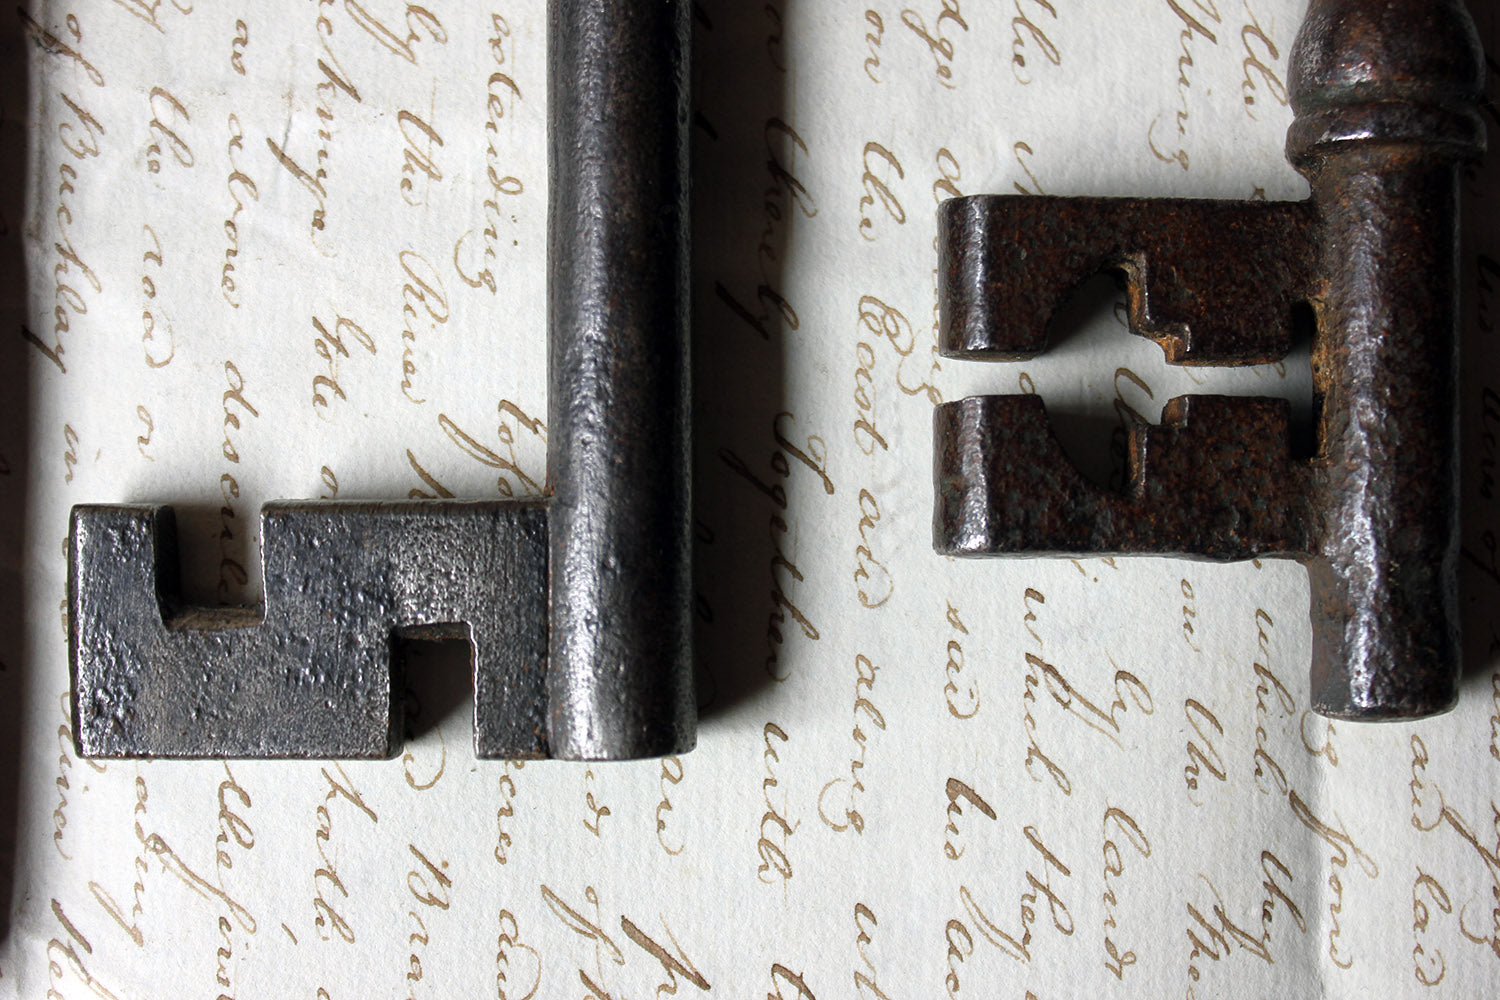 A Collection of Seven Antique Keys c.1790-1850